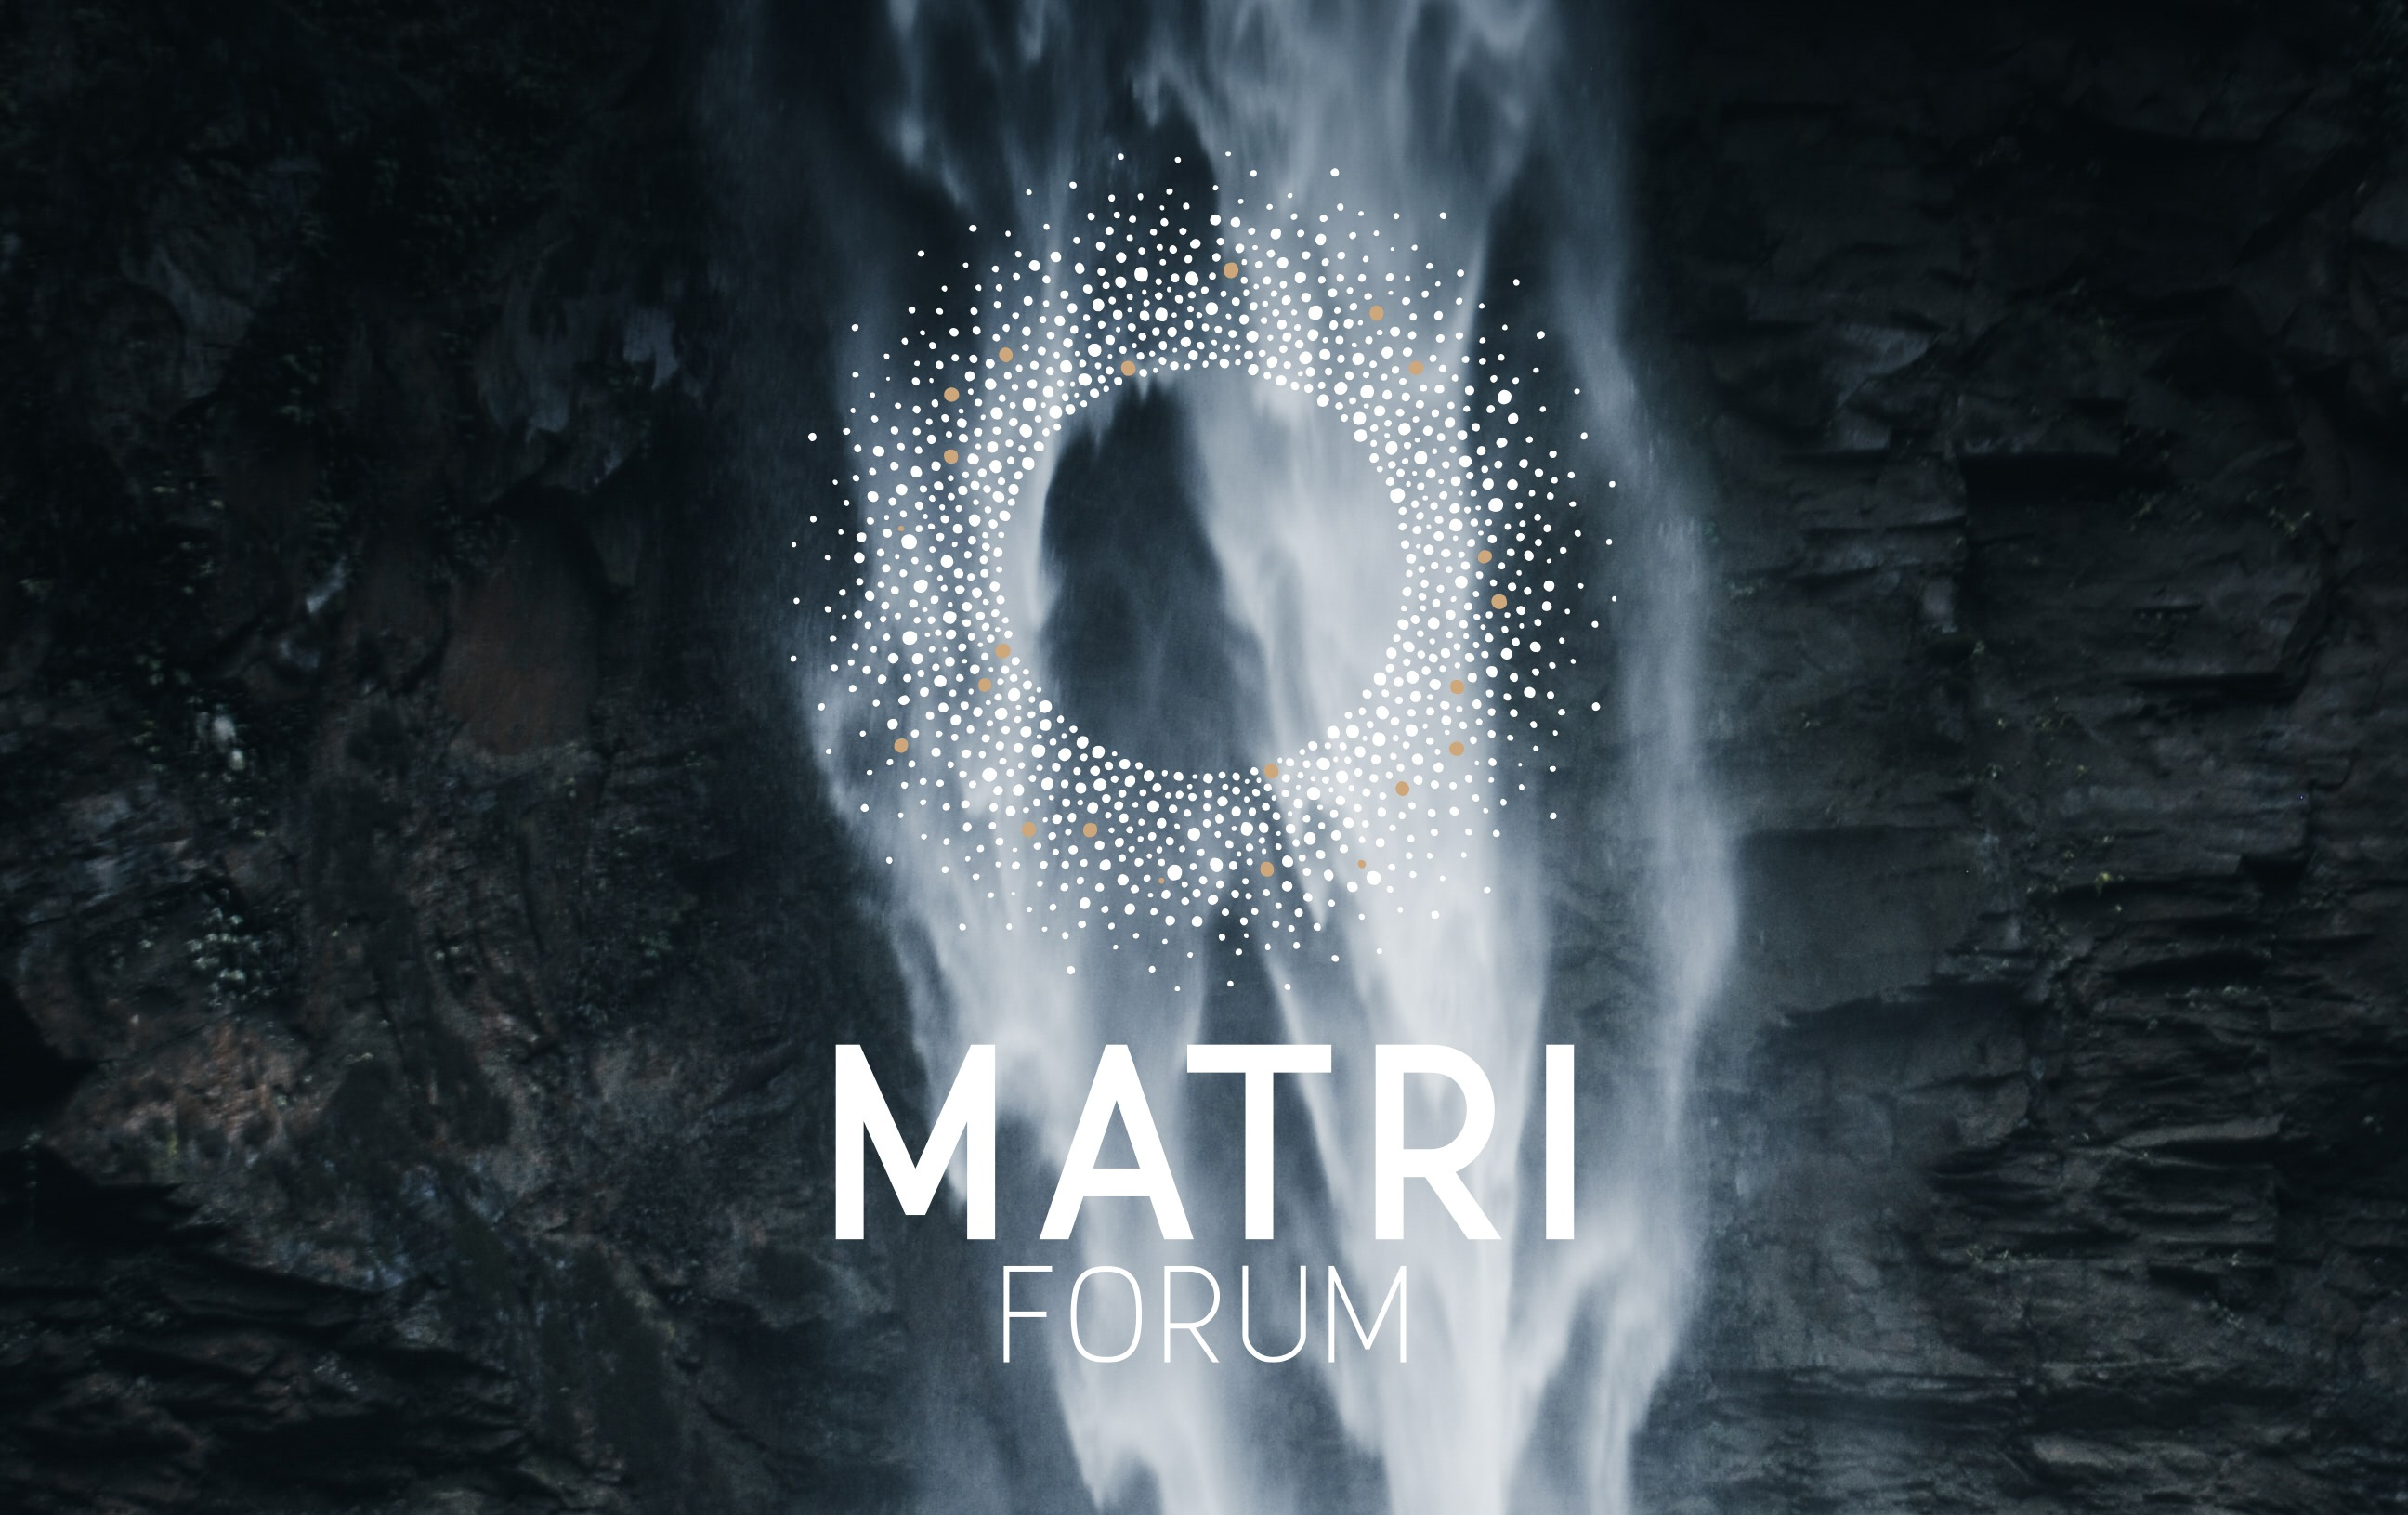 Matriforum waterfall